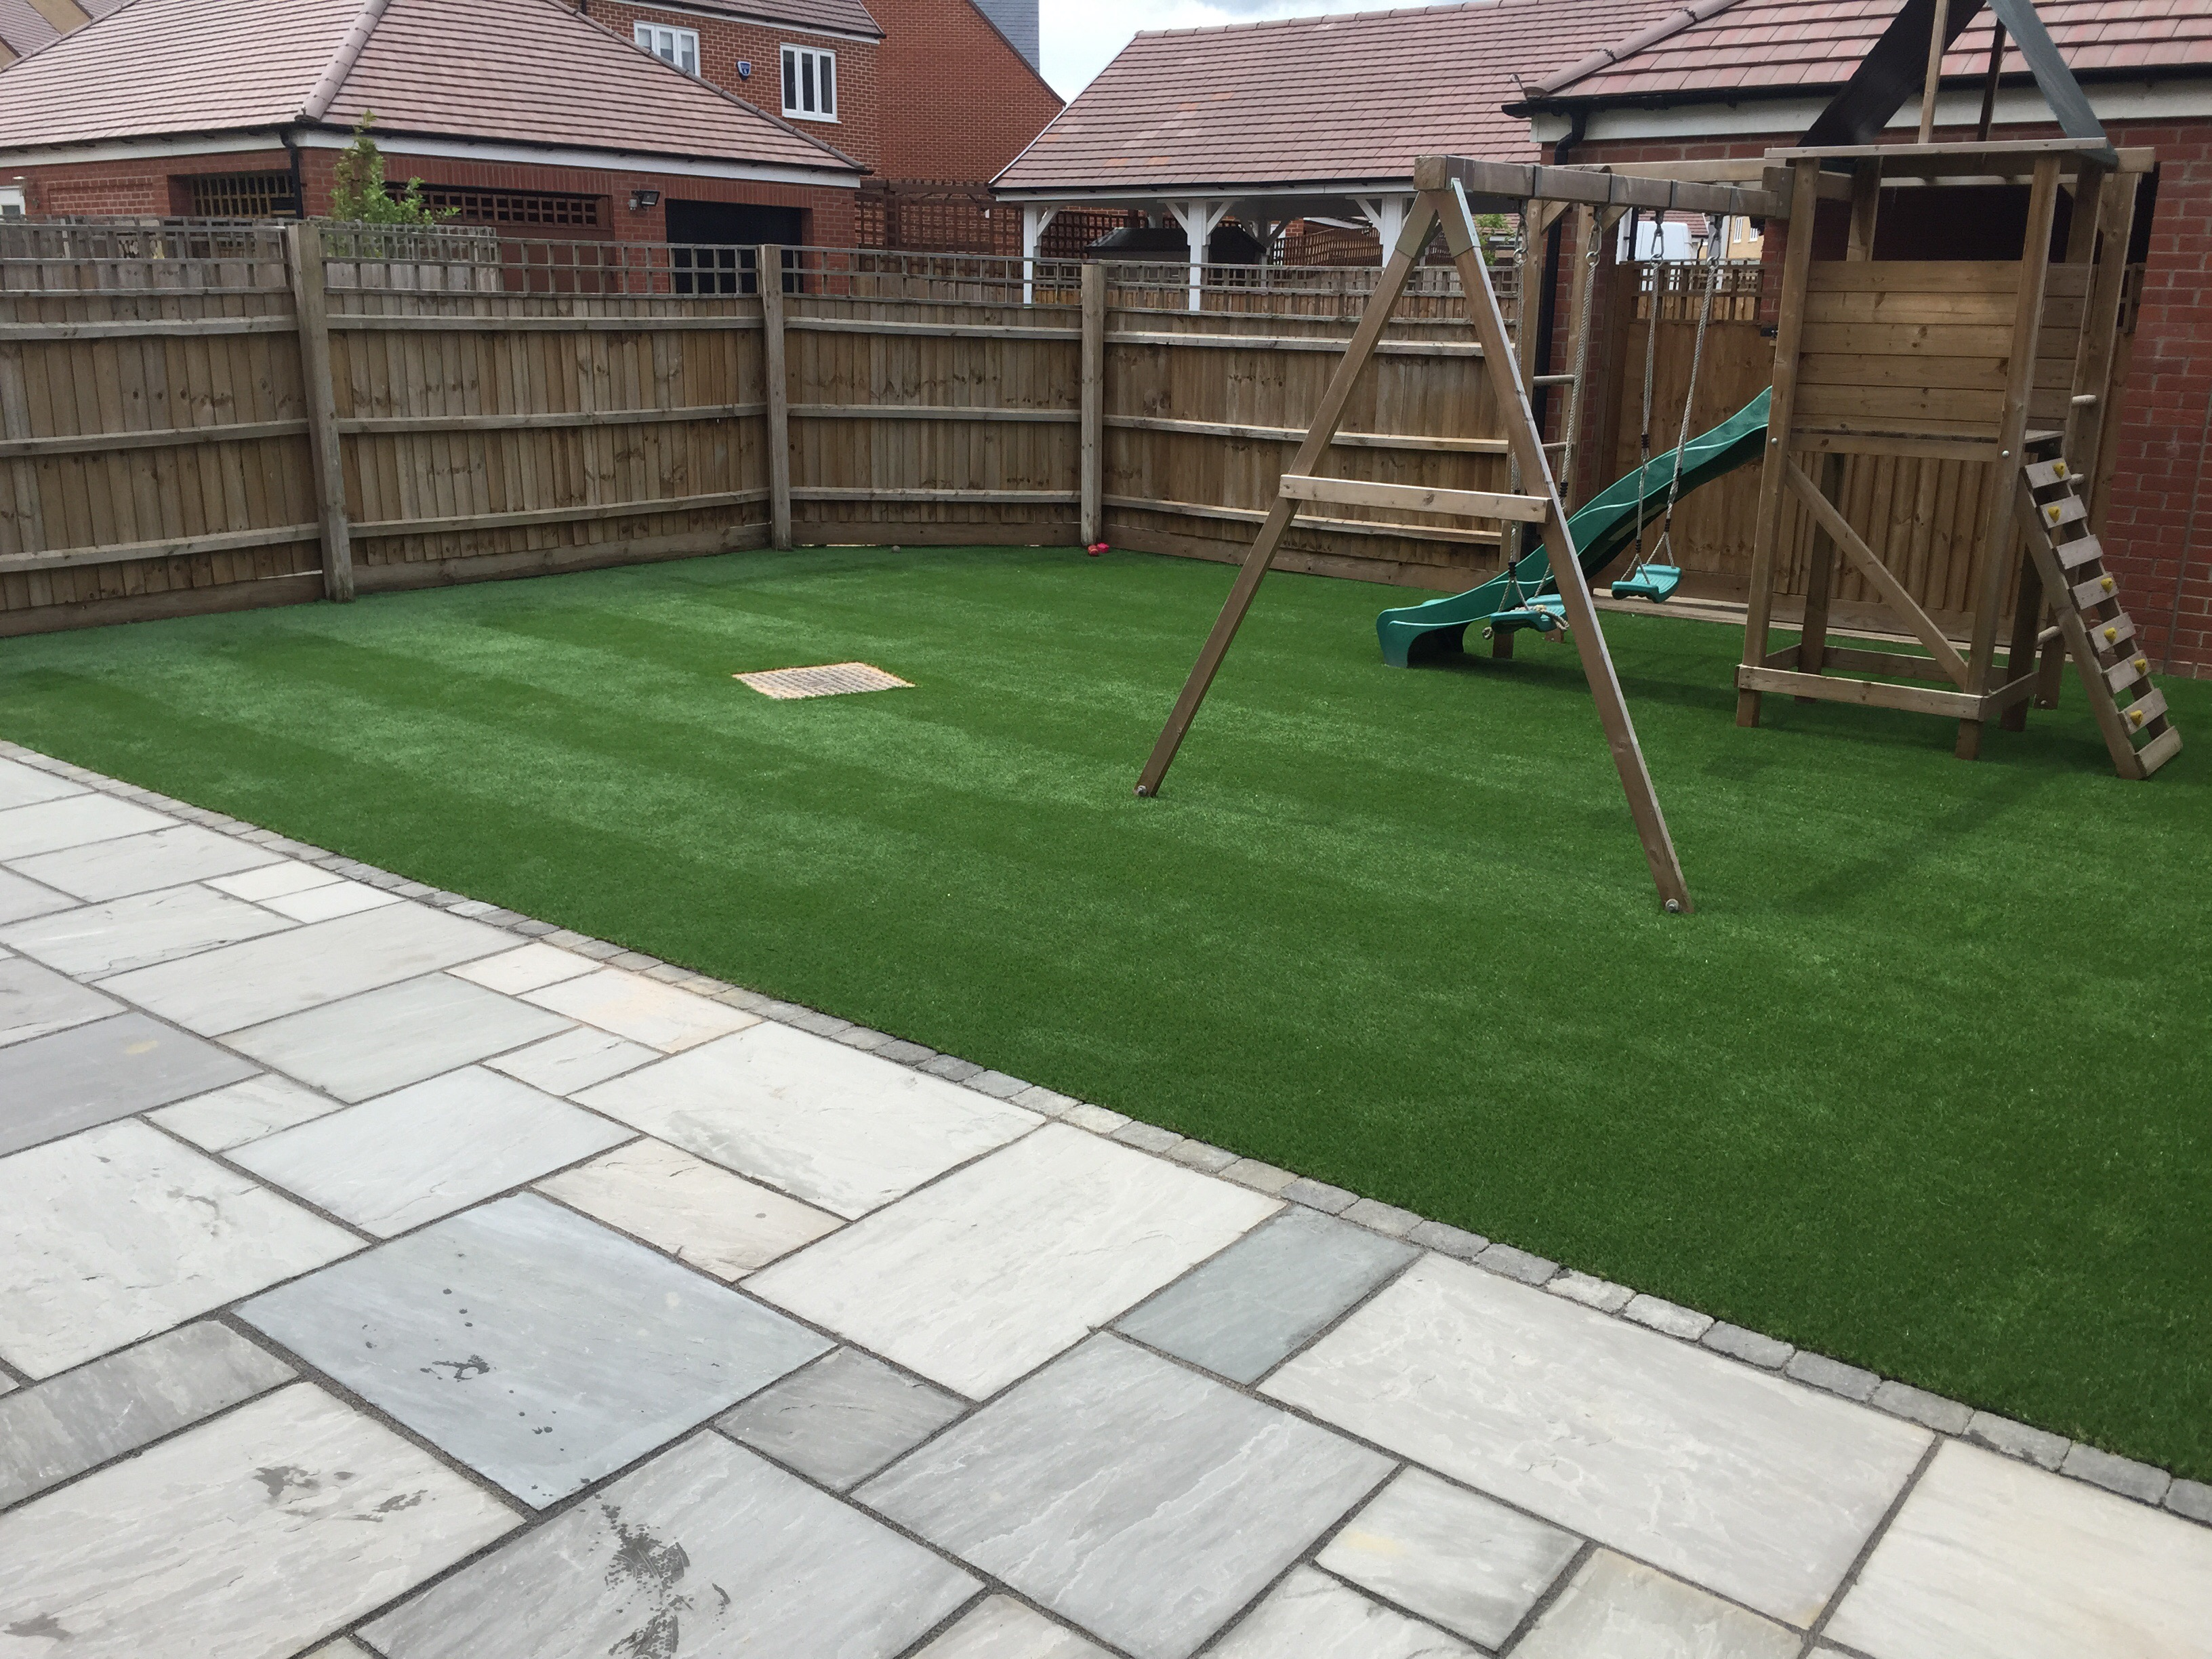 Sandstone patio and artificial lawn